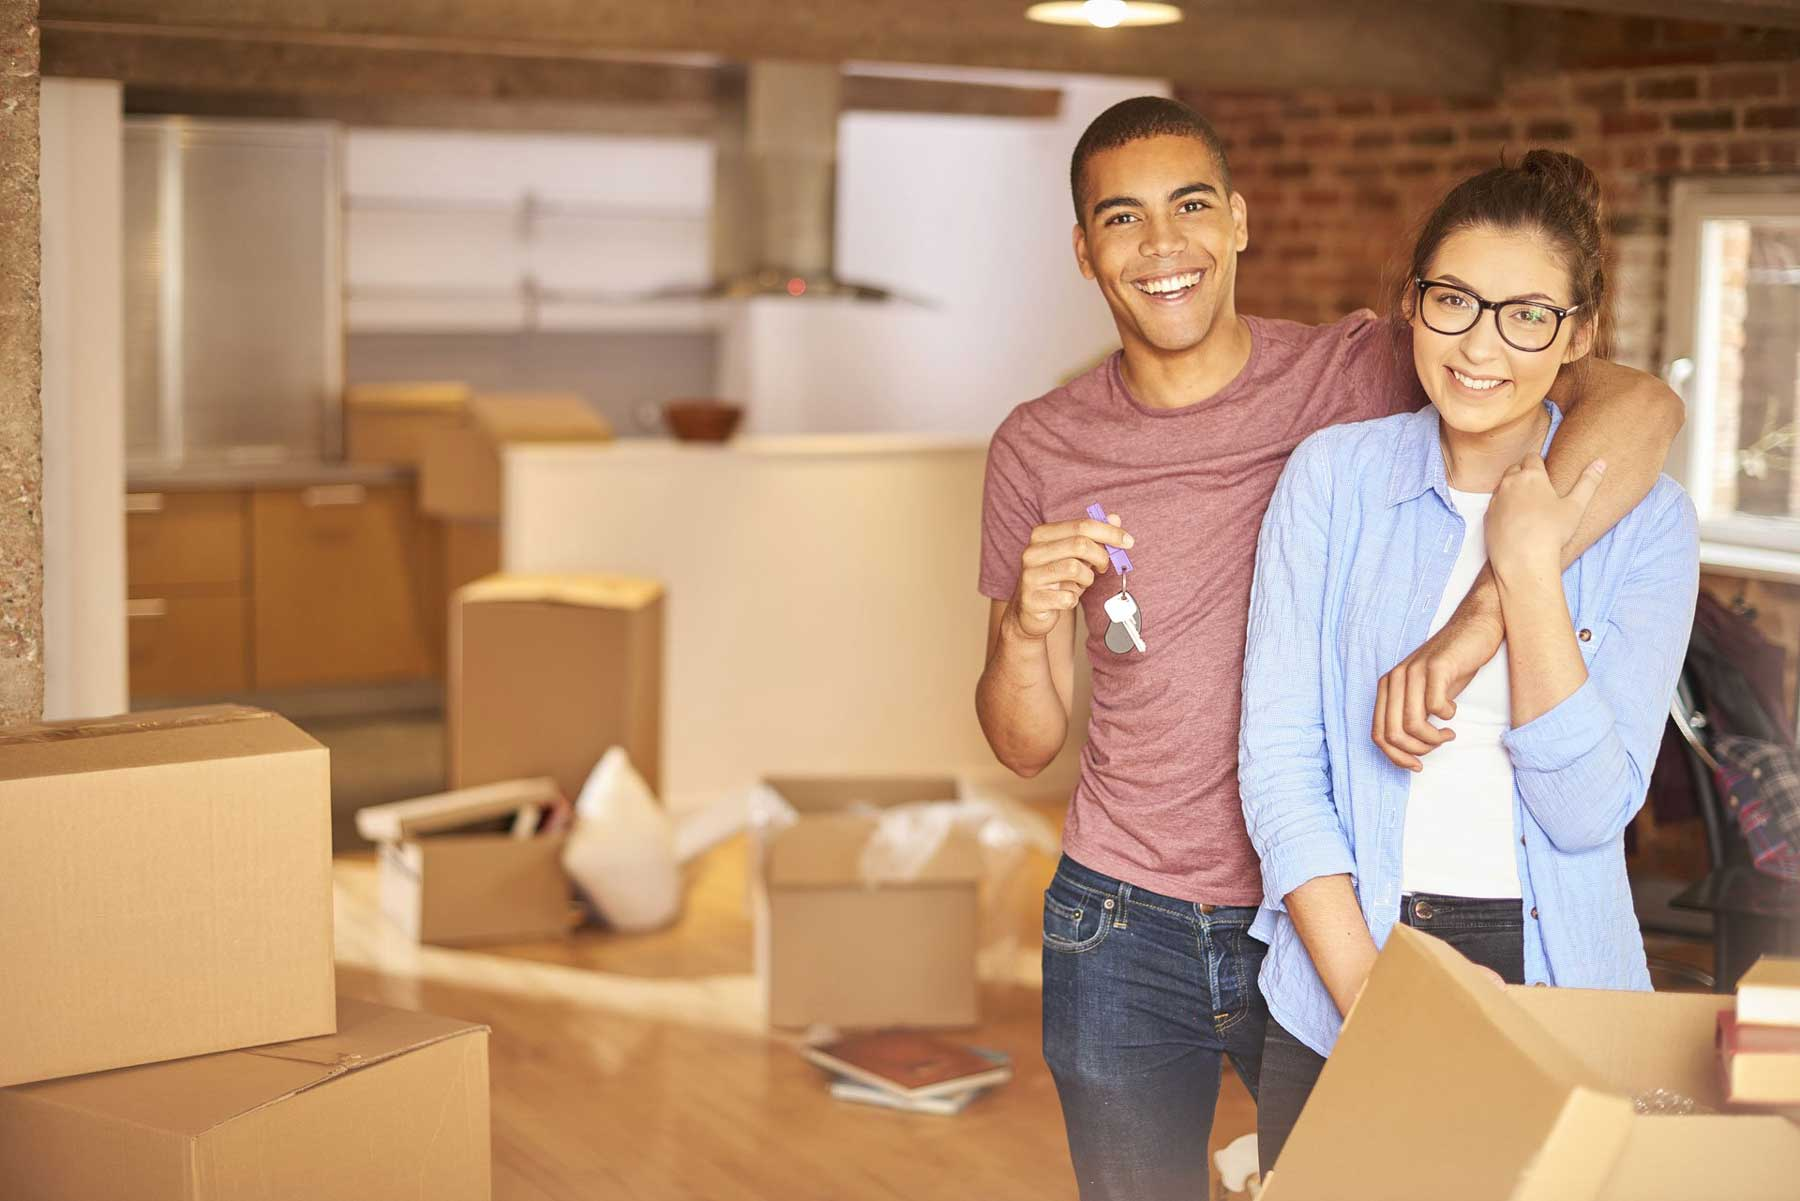 Decluttering tips for when you move in together